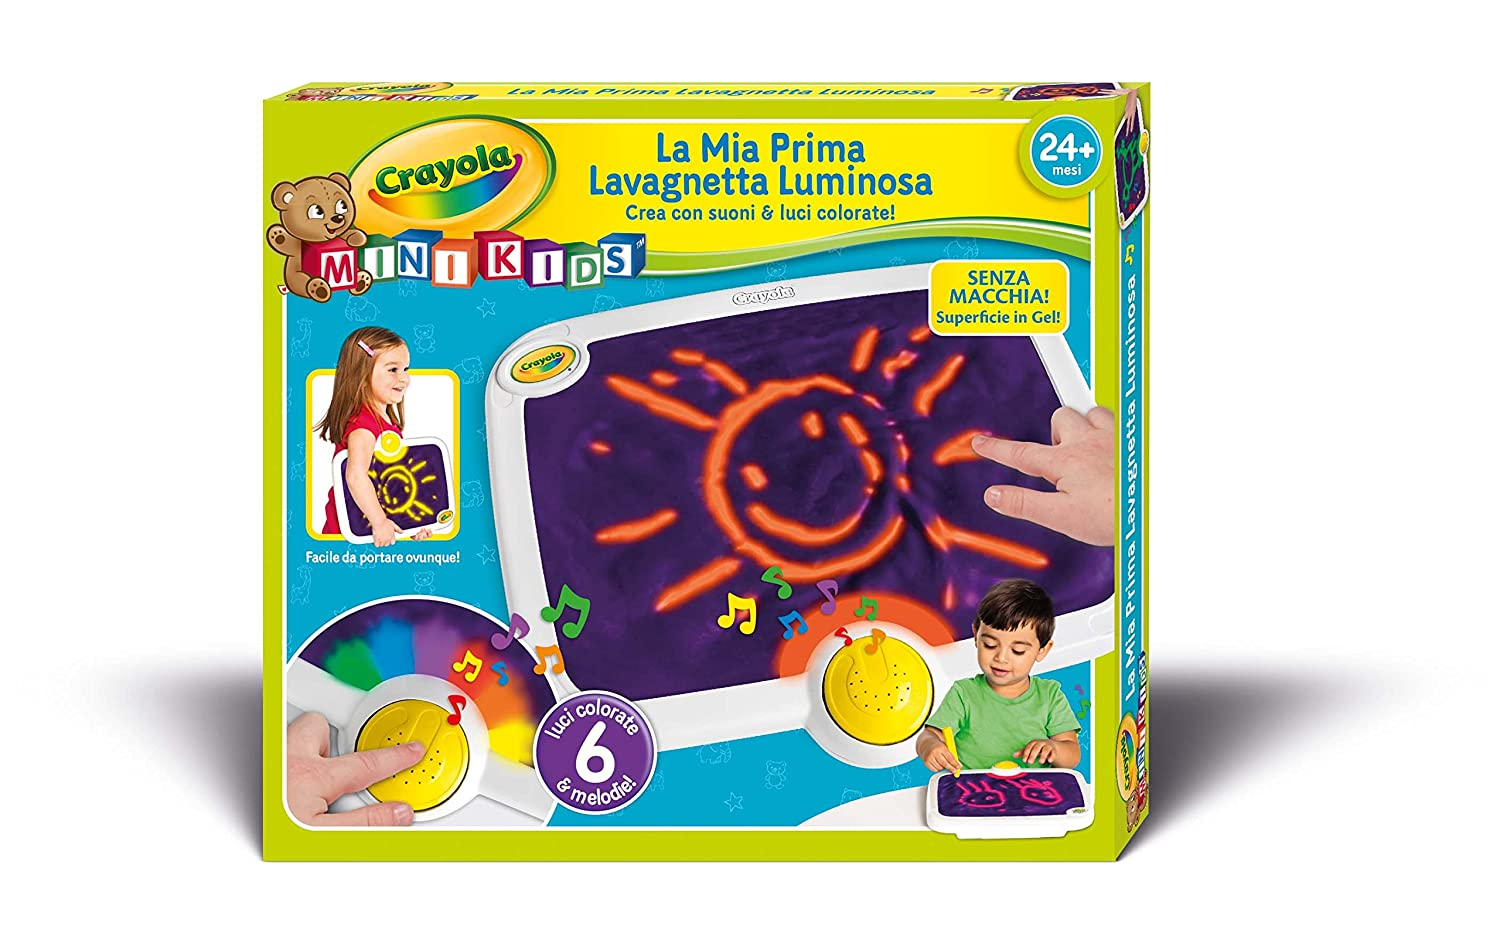 Crayola Electronic Coloring Book Instructions | Coloring Pages